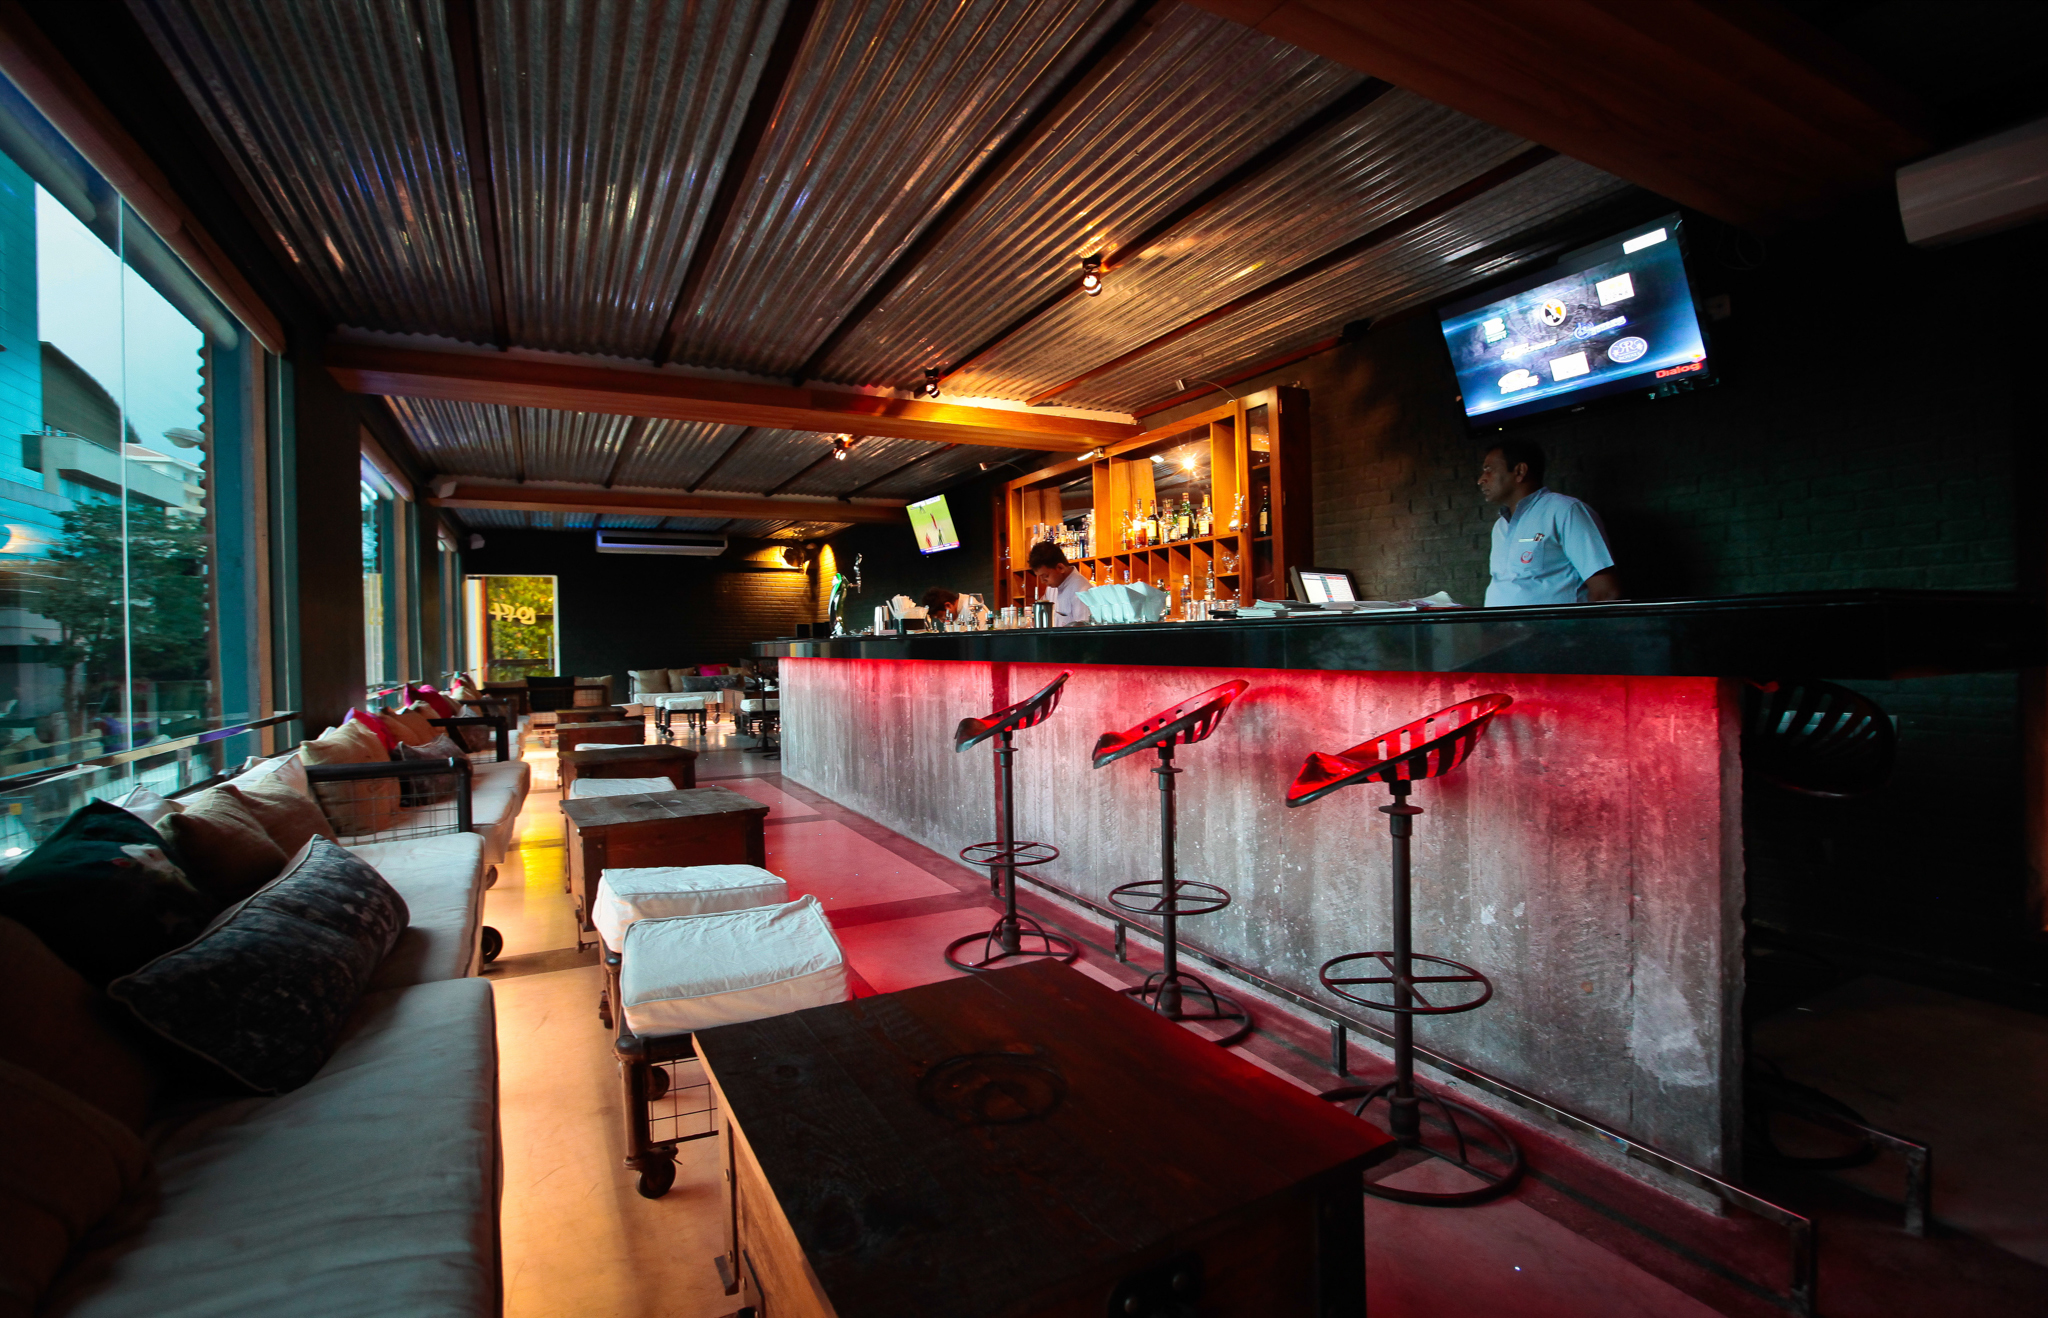 Loft Lounge Bar | Bars and pubs in Colombo 3, Colombo